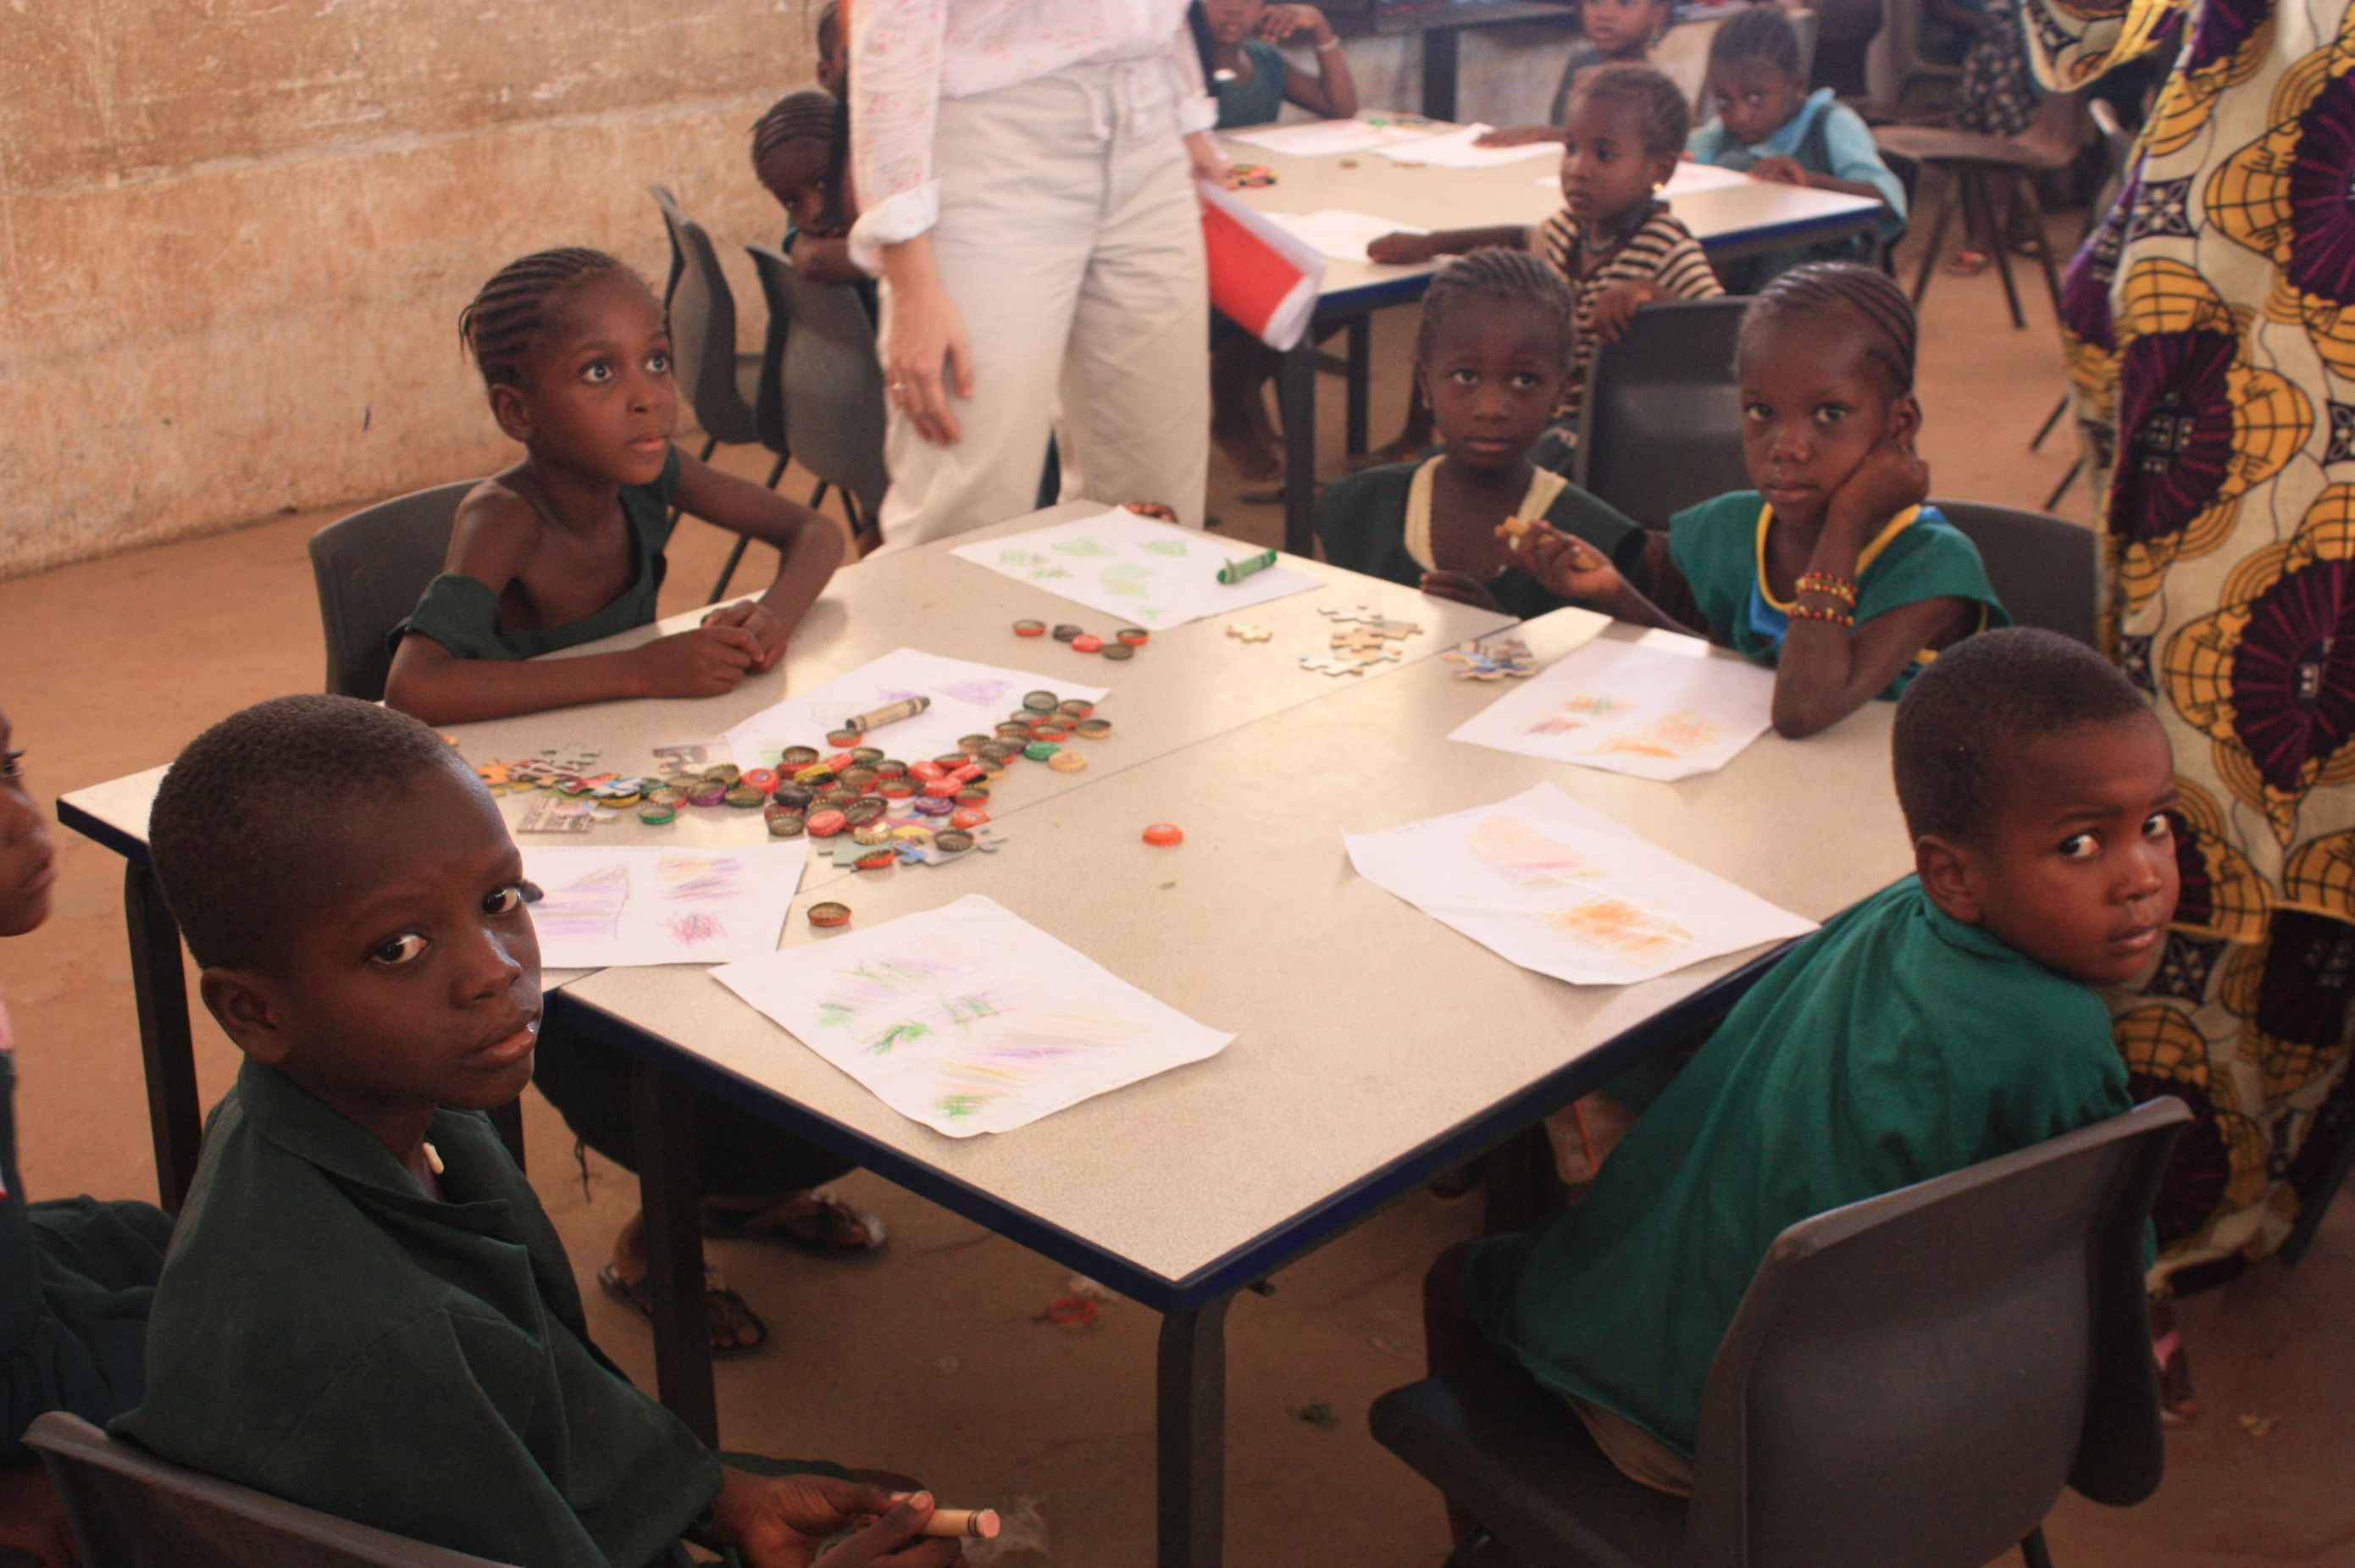 dubai cares launches new children's development programmes in comoros and gambia1